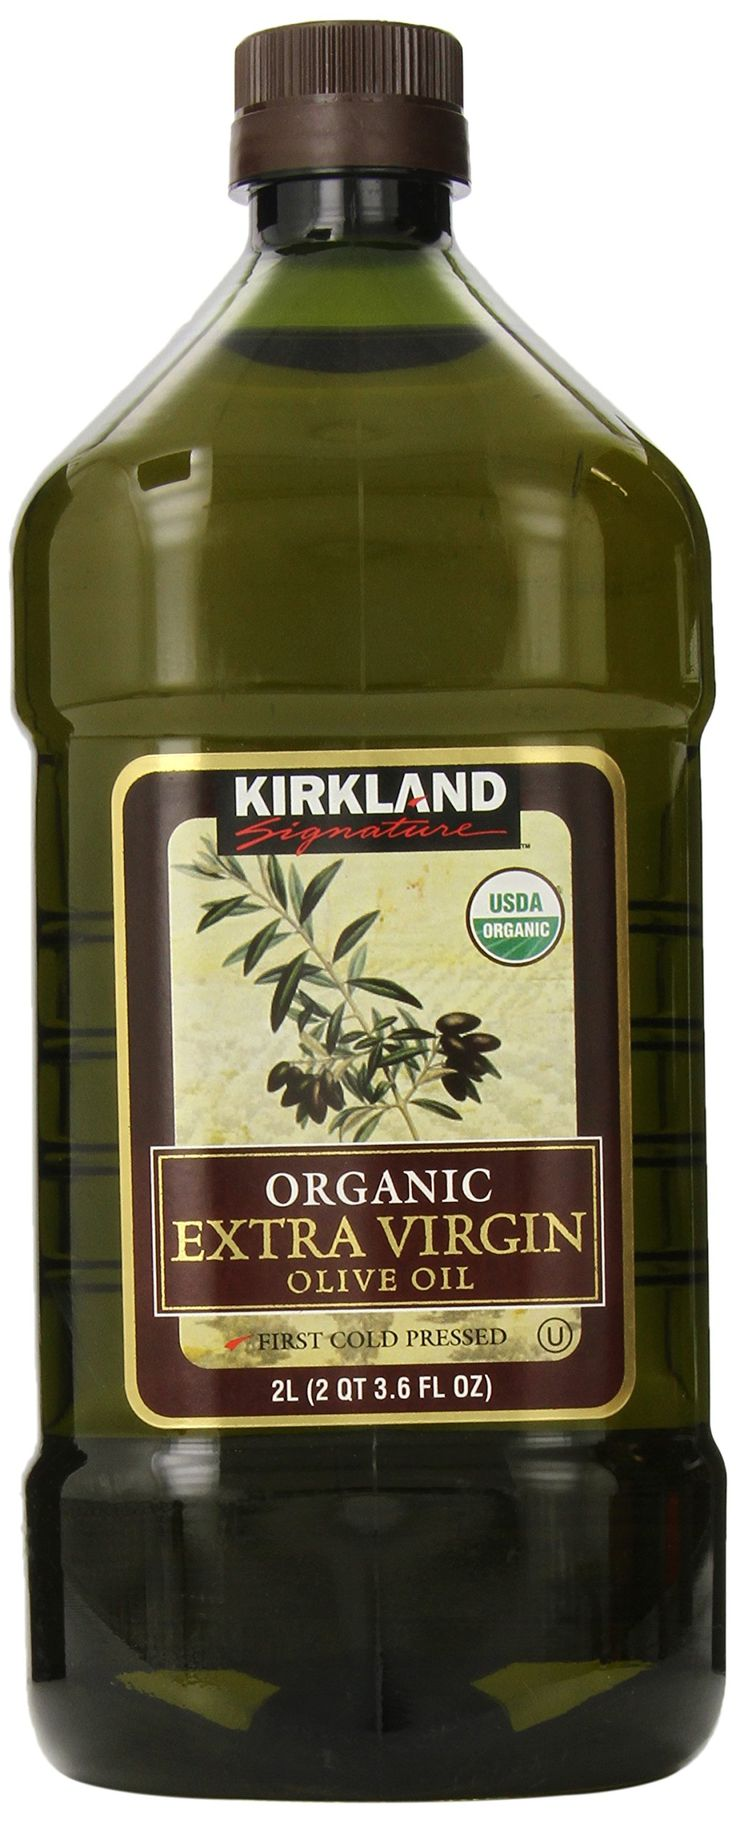 Costco: Kirkland Signature Organic Extra Virgin Olive Oil are unadulterated. They passed UCDavis unadulterated olive oil testing. See PhoenixHelix post: http://www.phoenixhelix.com/2013/03/04/would-the-real-olive-oil-please-stand-up/